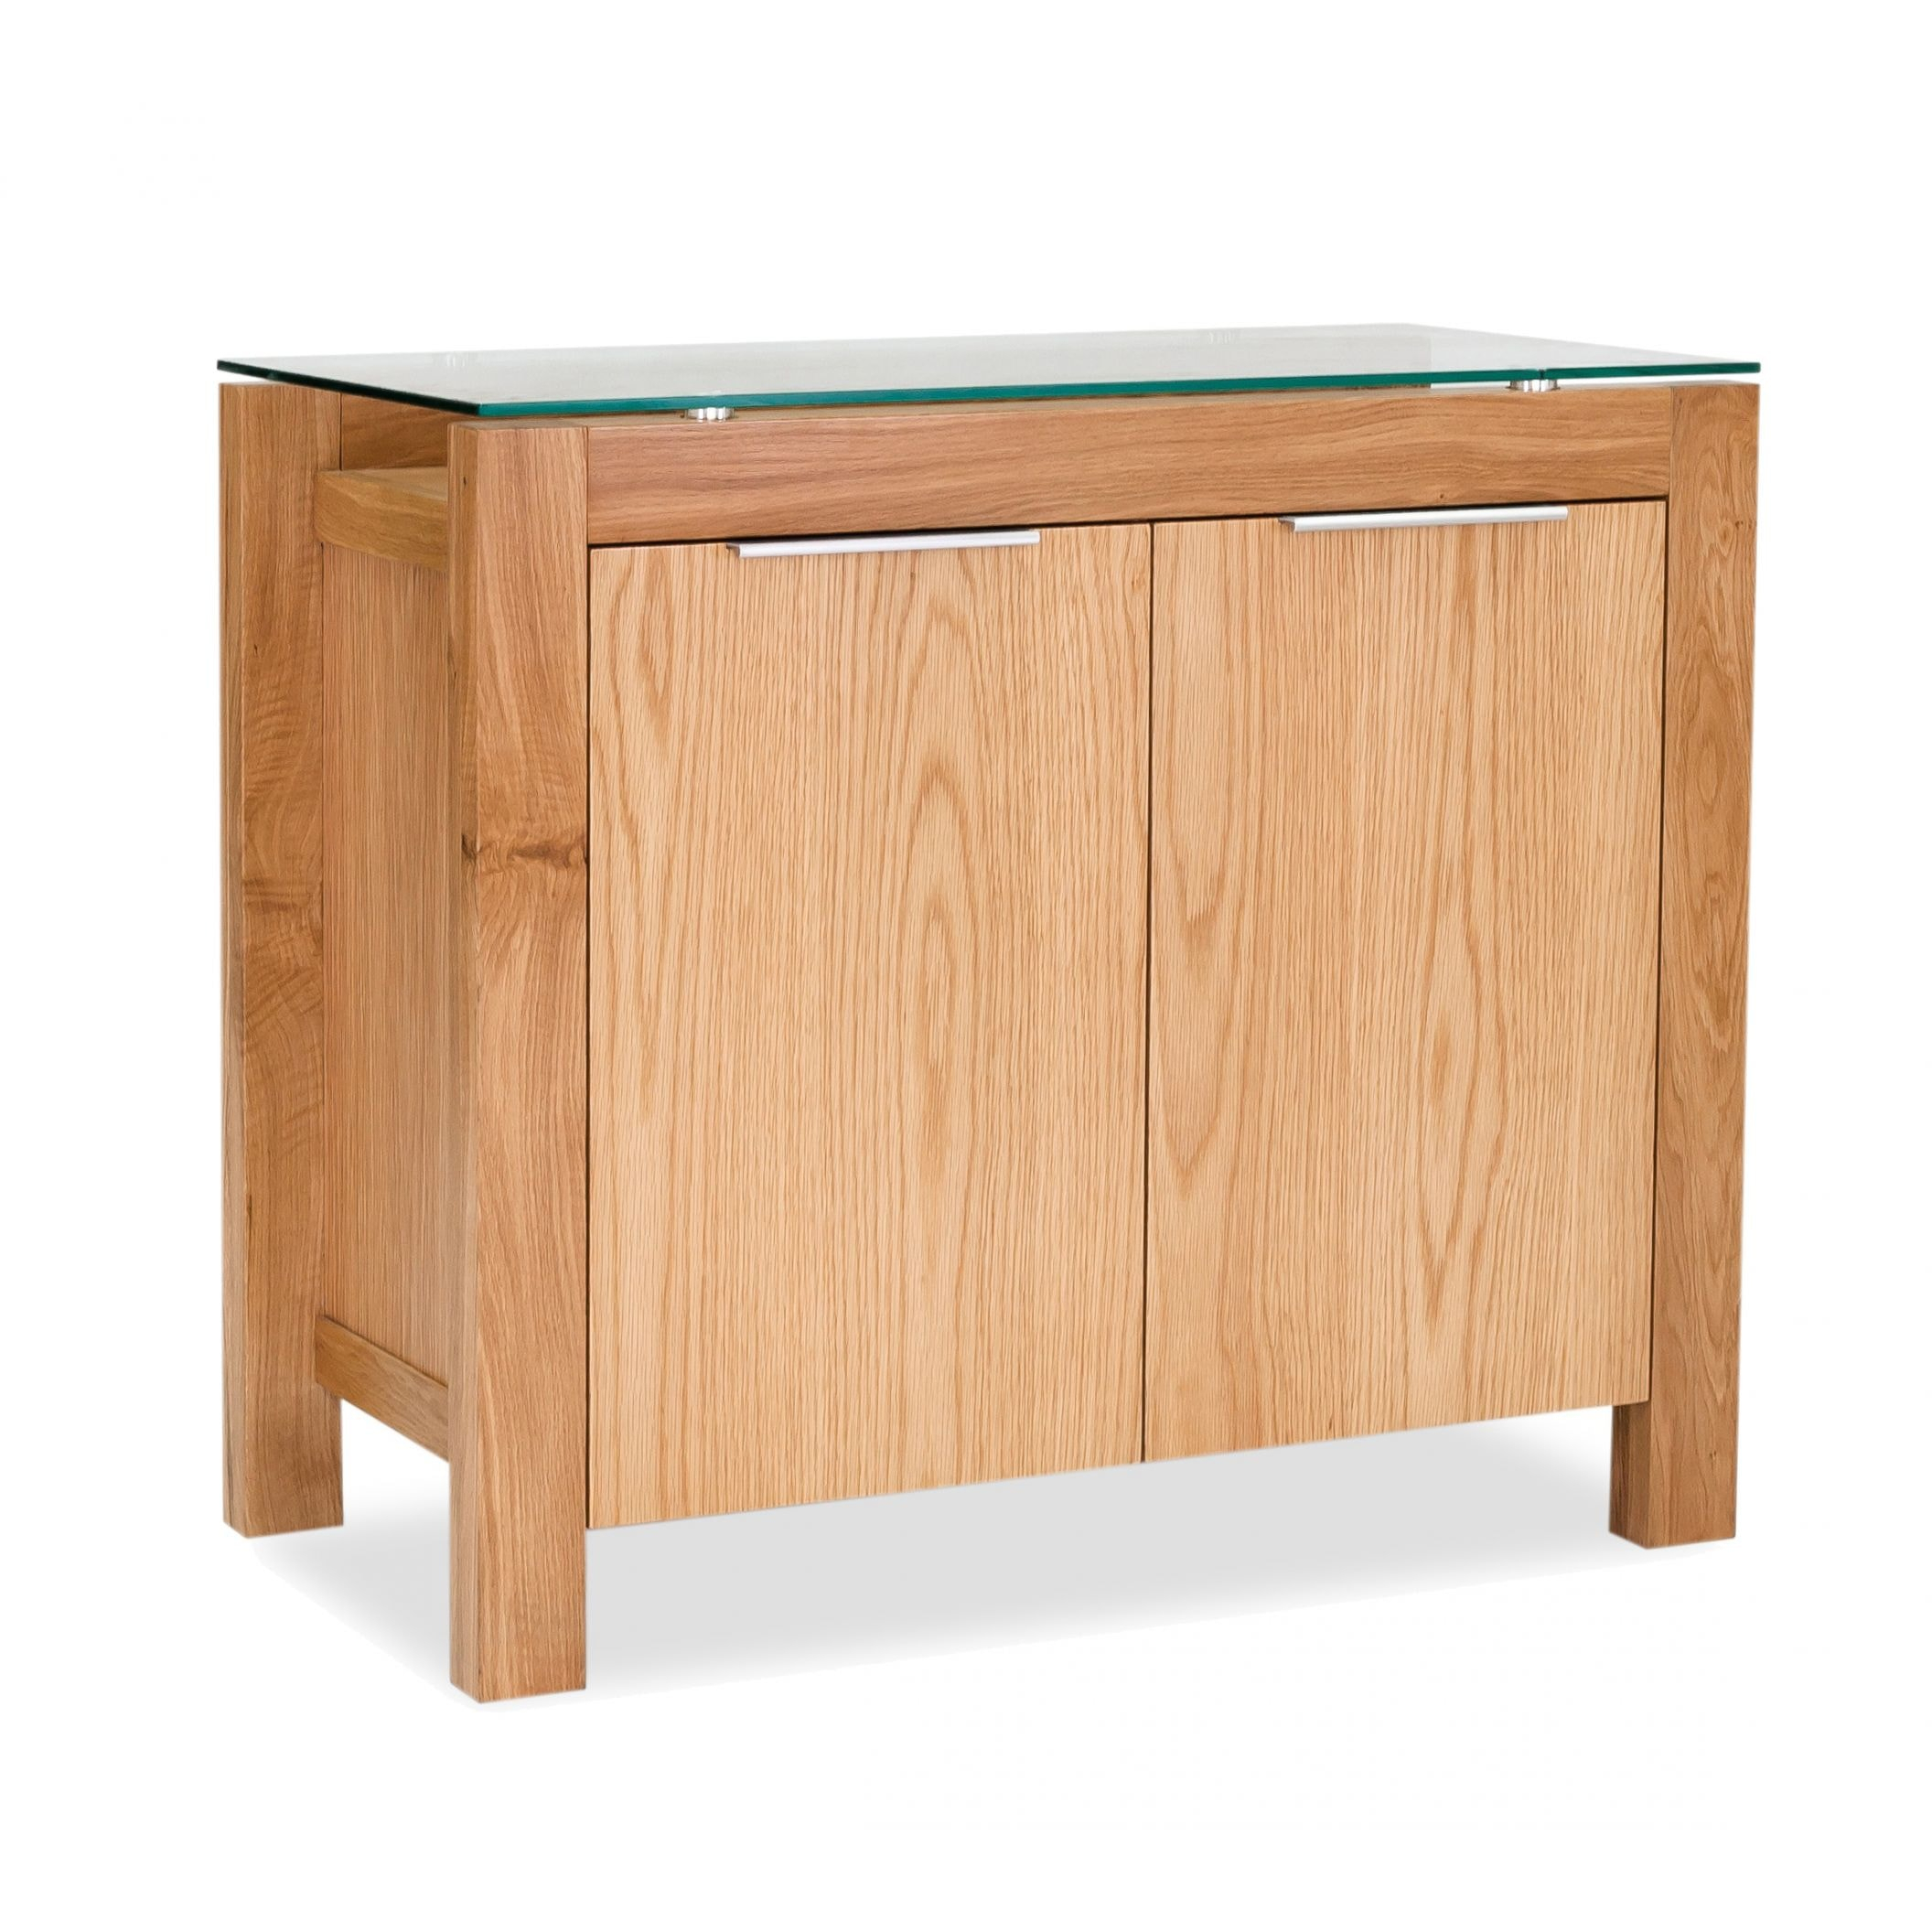 Inspiration about Tribeca Oak Sideboard In Latest Tribeca Sideboards (#15 of 20)